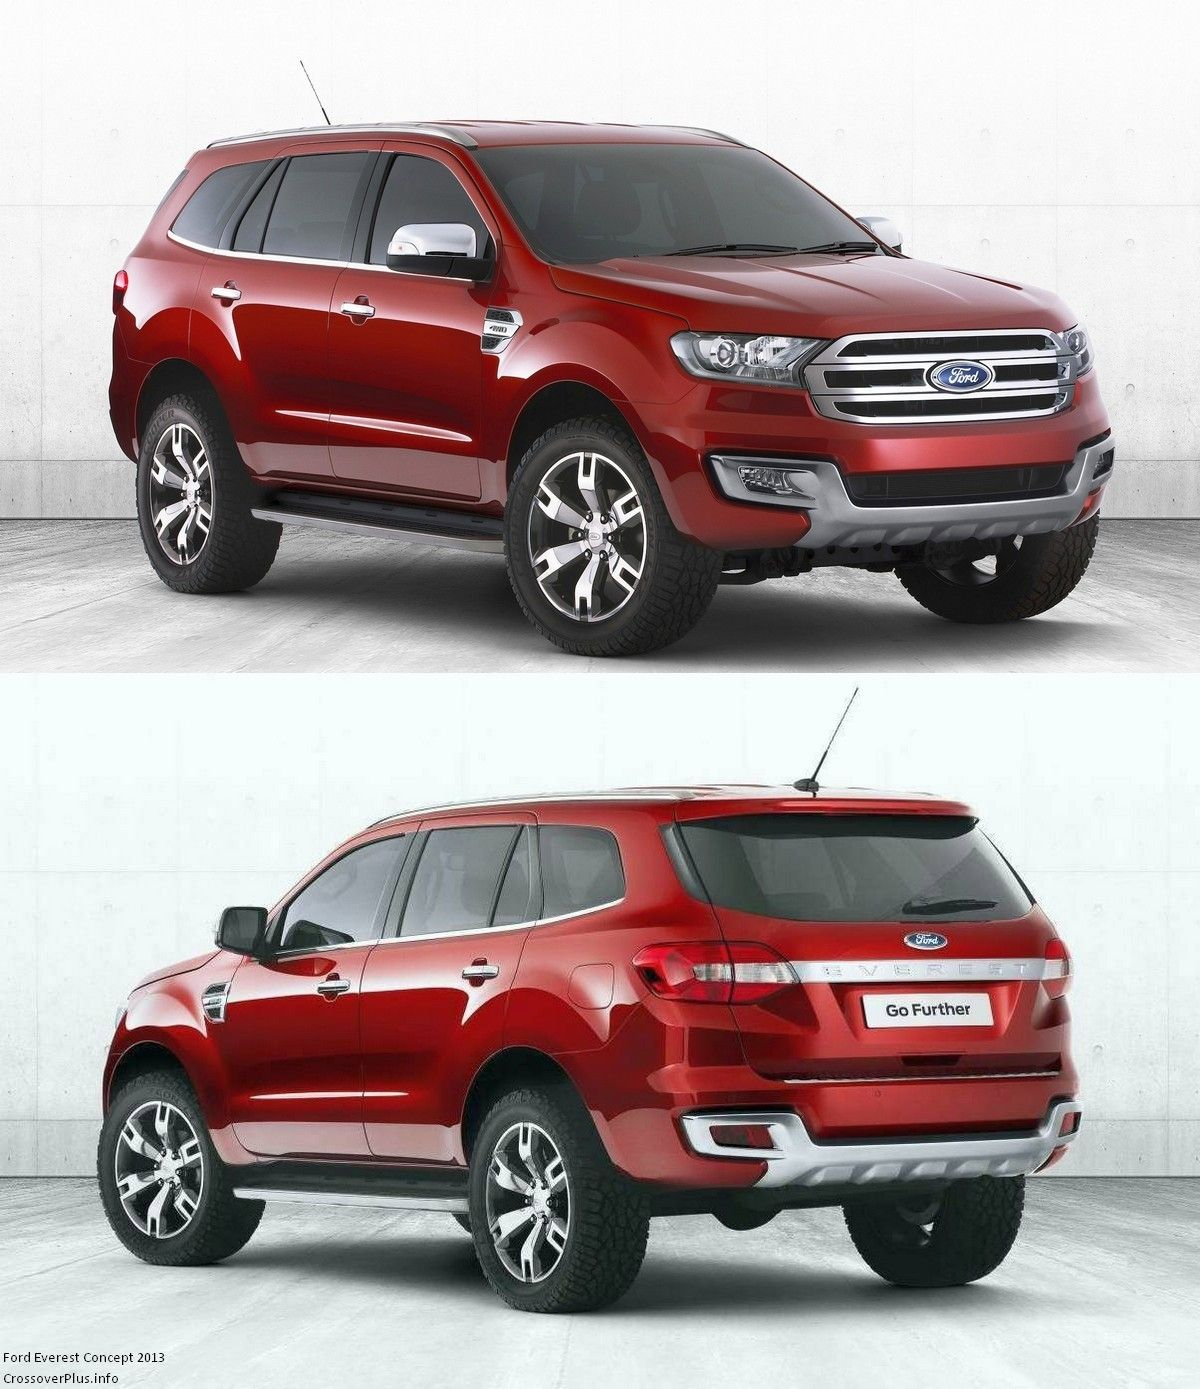 2019 ford everest review 2019 ford everest should show up during the first several weeks of 2019 in the industry for a dozen years this model s